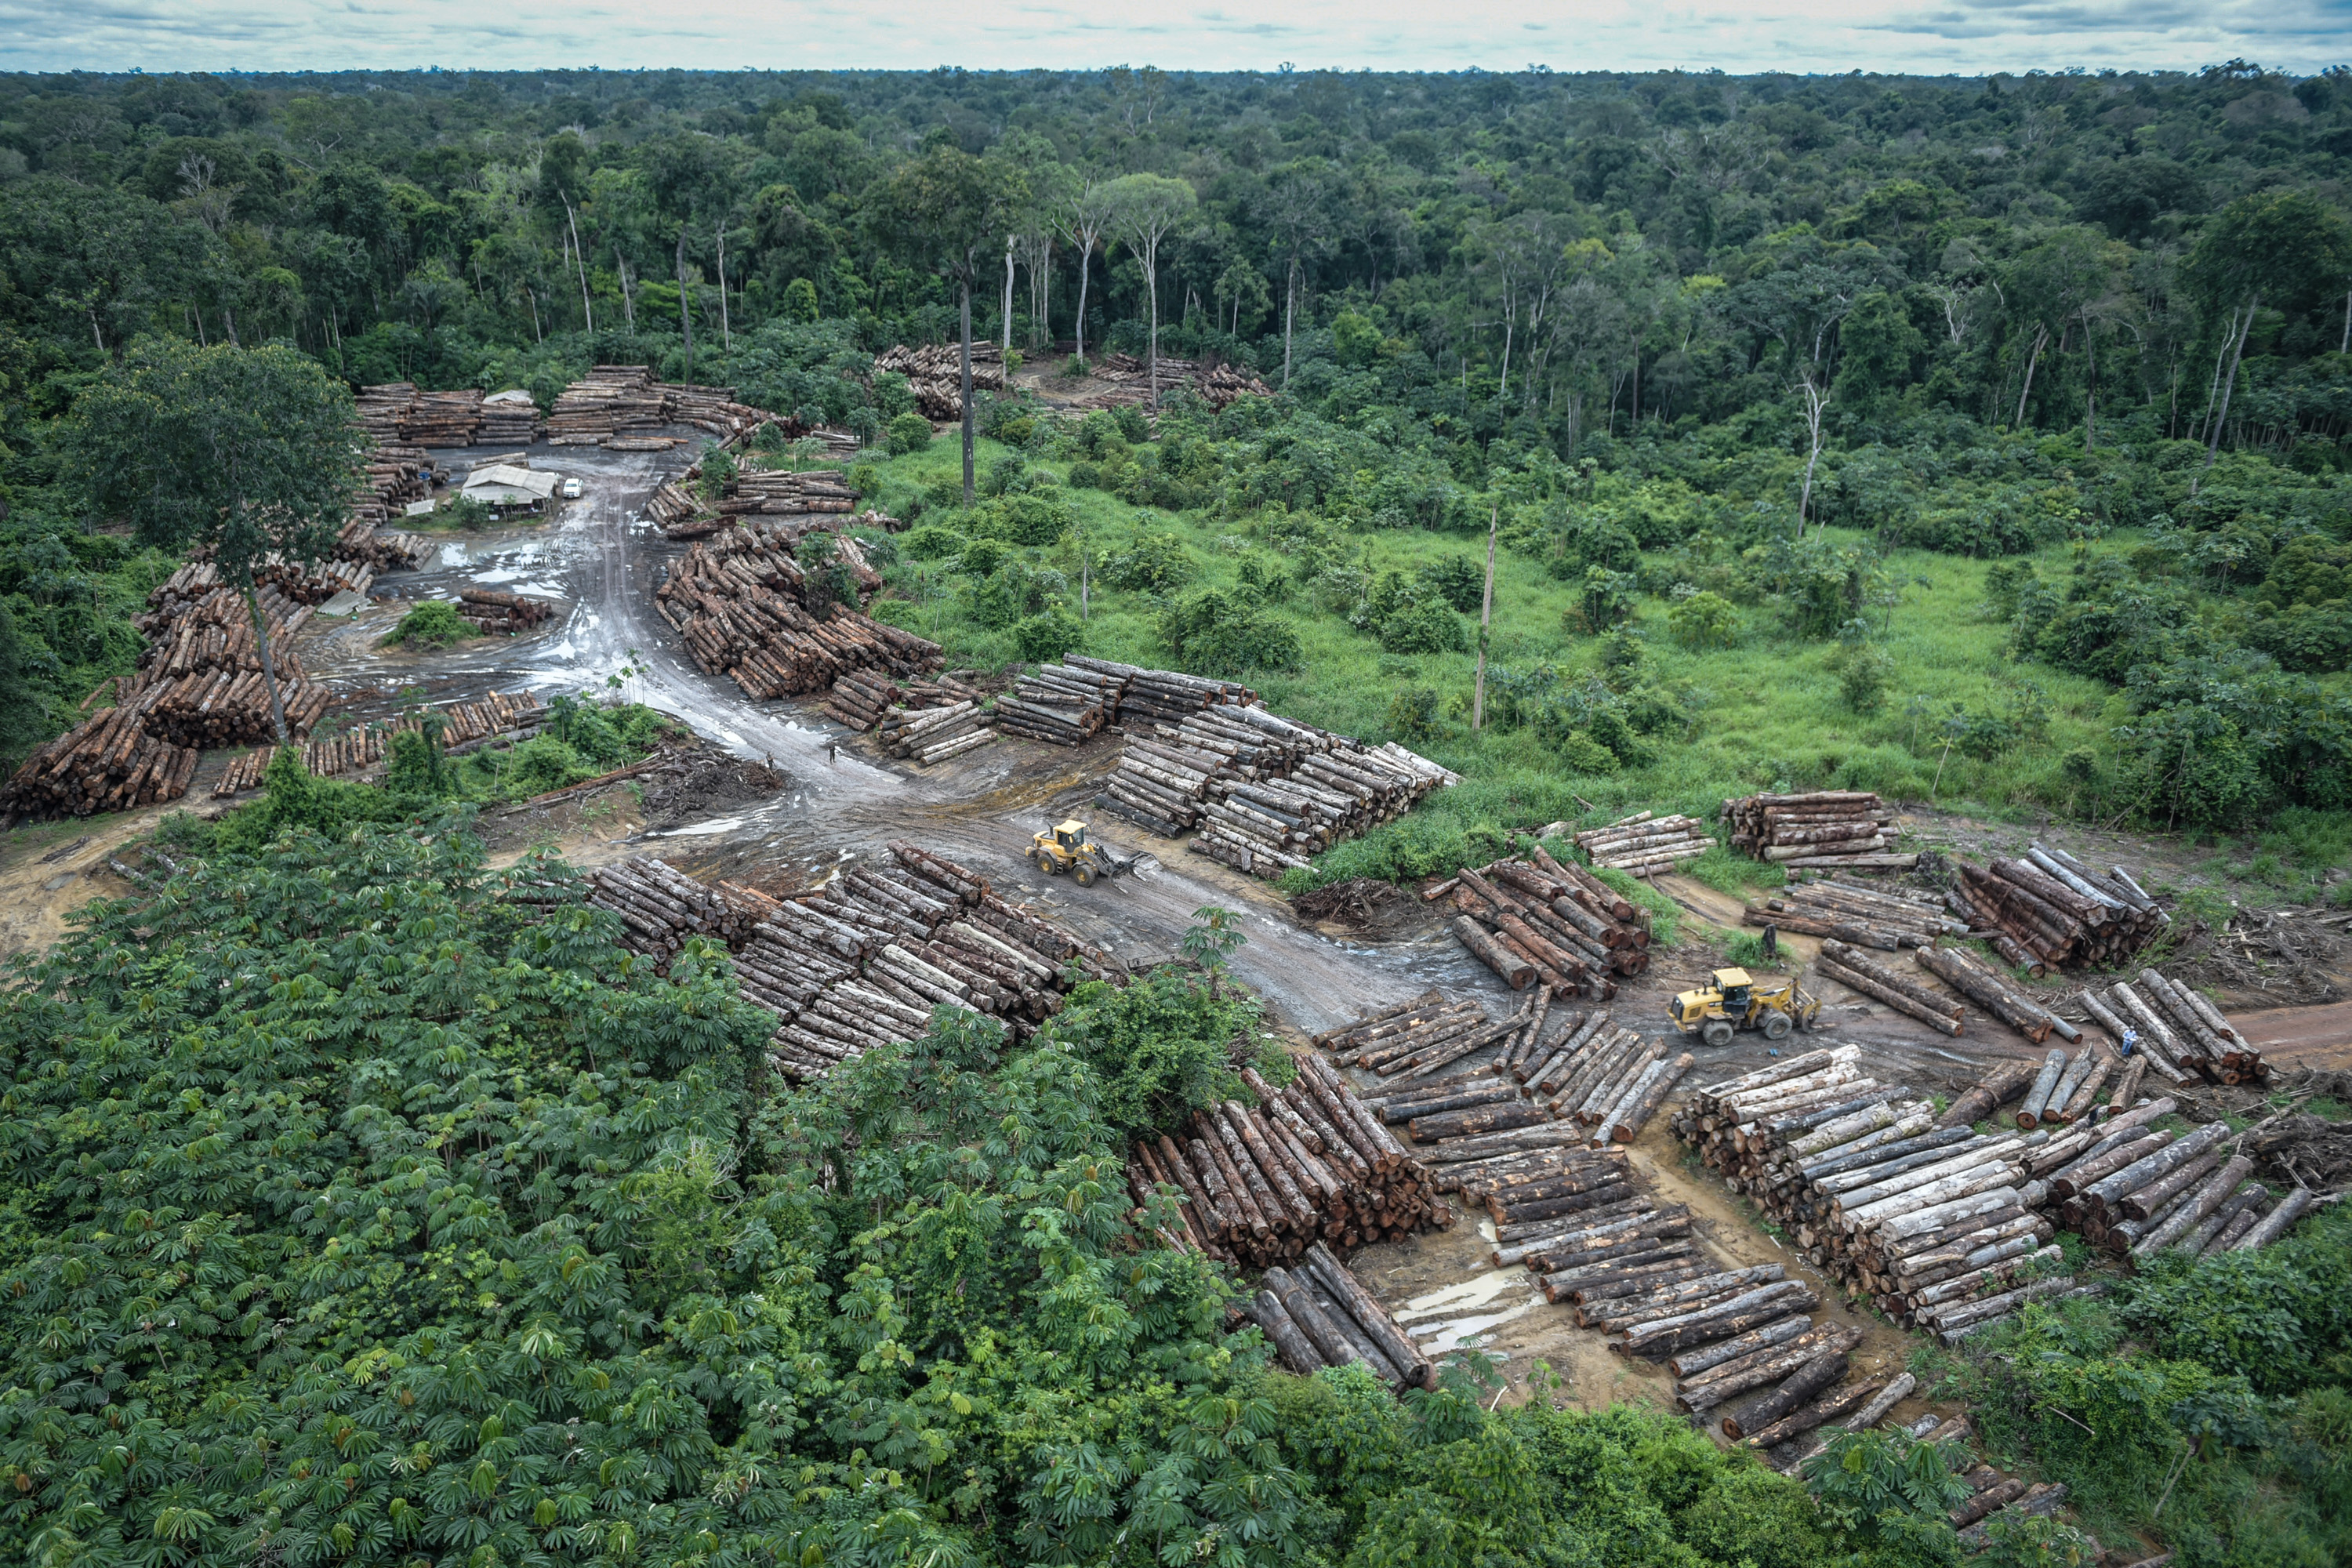 7,387 tree trunks from illegal clearing in the Pirititi Indigenous Land, southern Roraima, Brasil. Felipe Werneck / Ascom / Ibama, 2018.